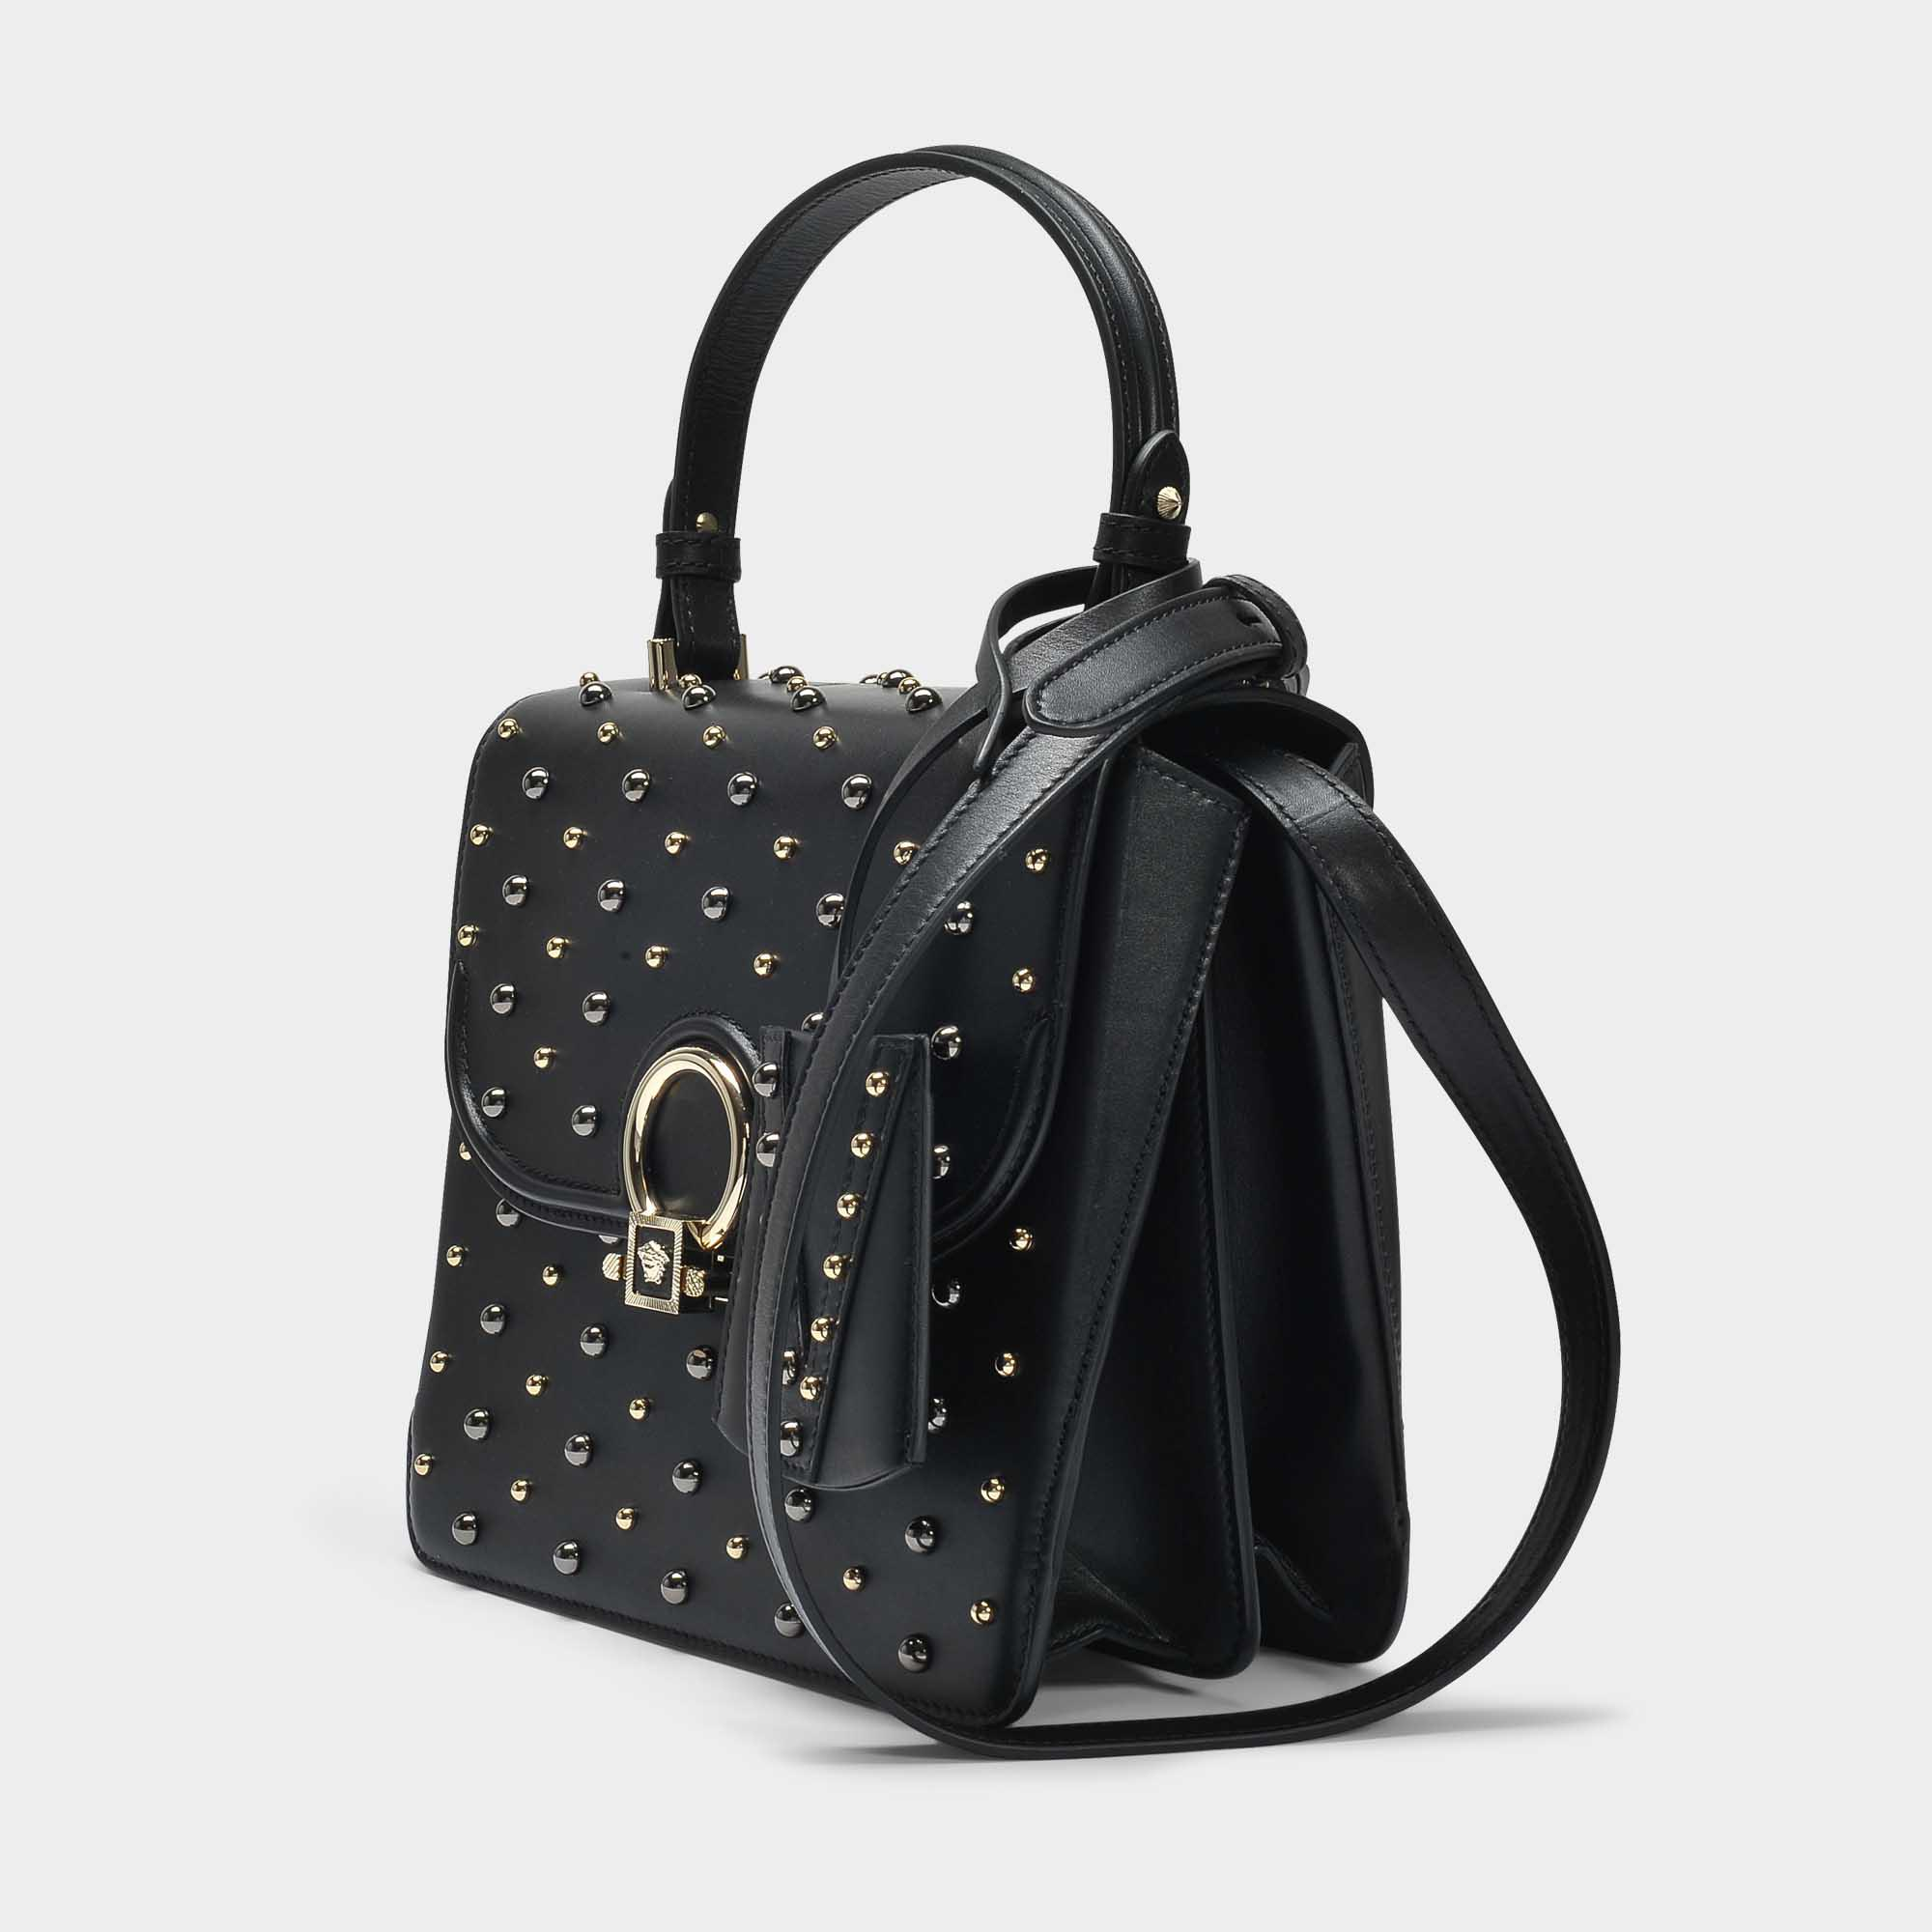 DV One Medium Bag in Black Calf Versace Cheap Sale Clearance Store Huge Surprise Sale Cheap Prices Discount Really 6oW9yQS1